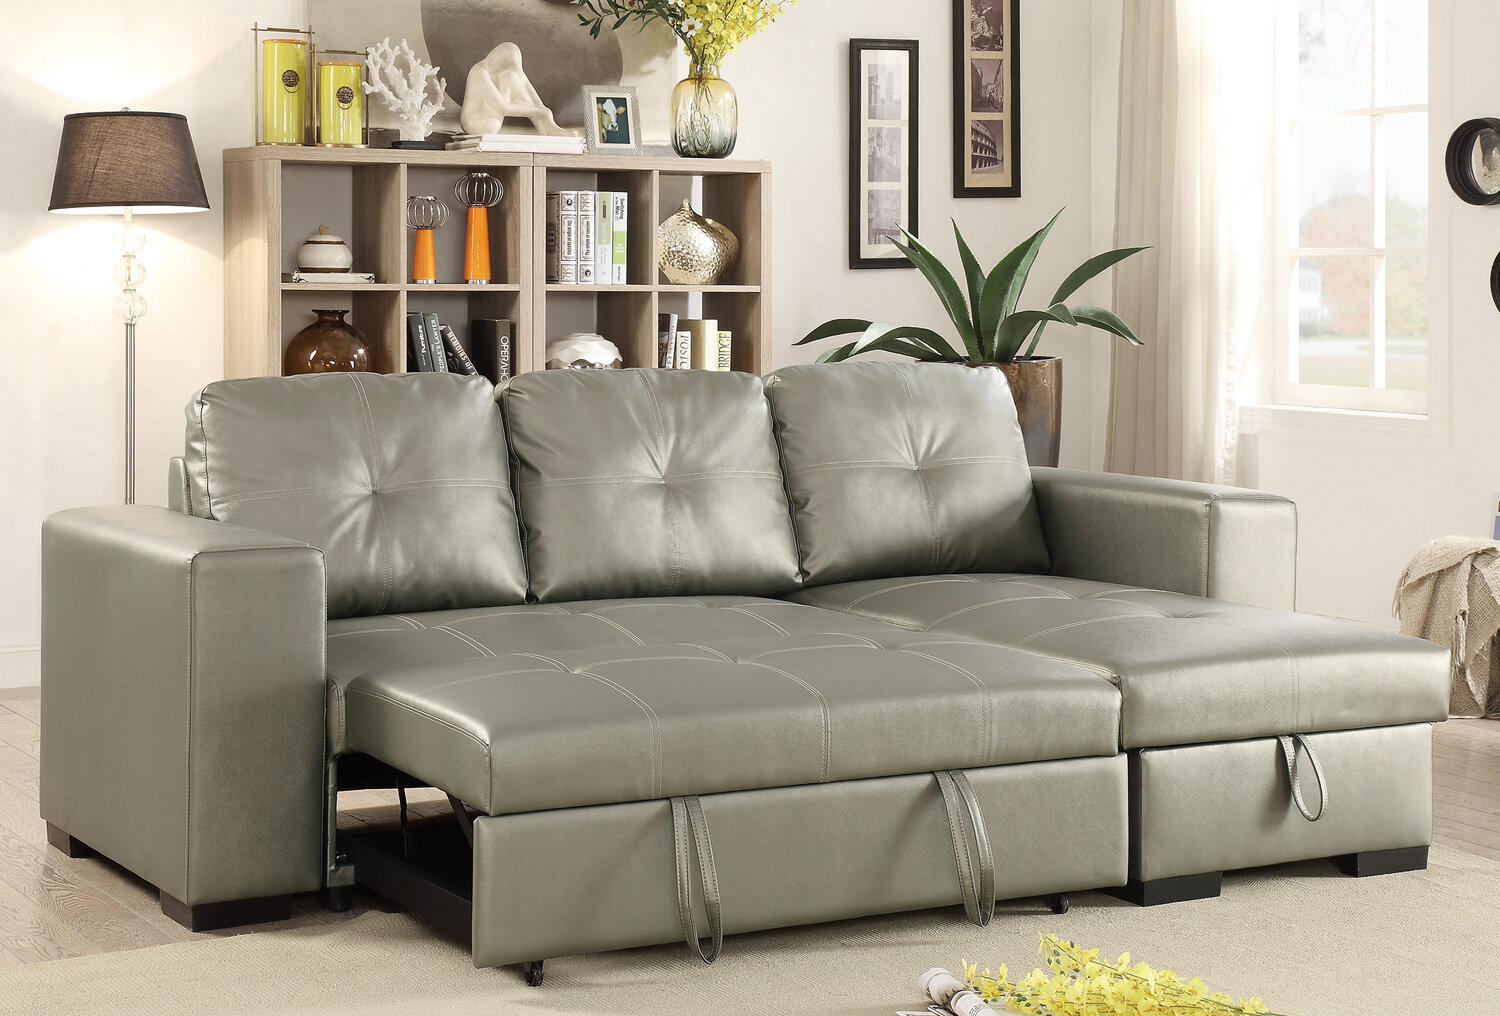 delivery living loveseat out sofa sleeper furniture room memory bed mia free beds spaces queen departments fold with assembly foam